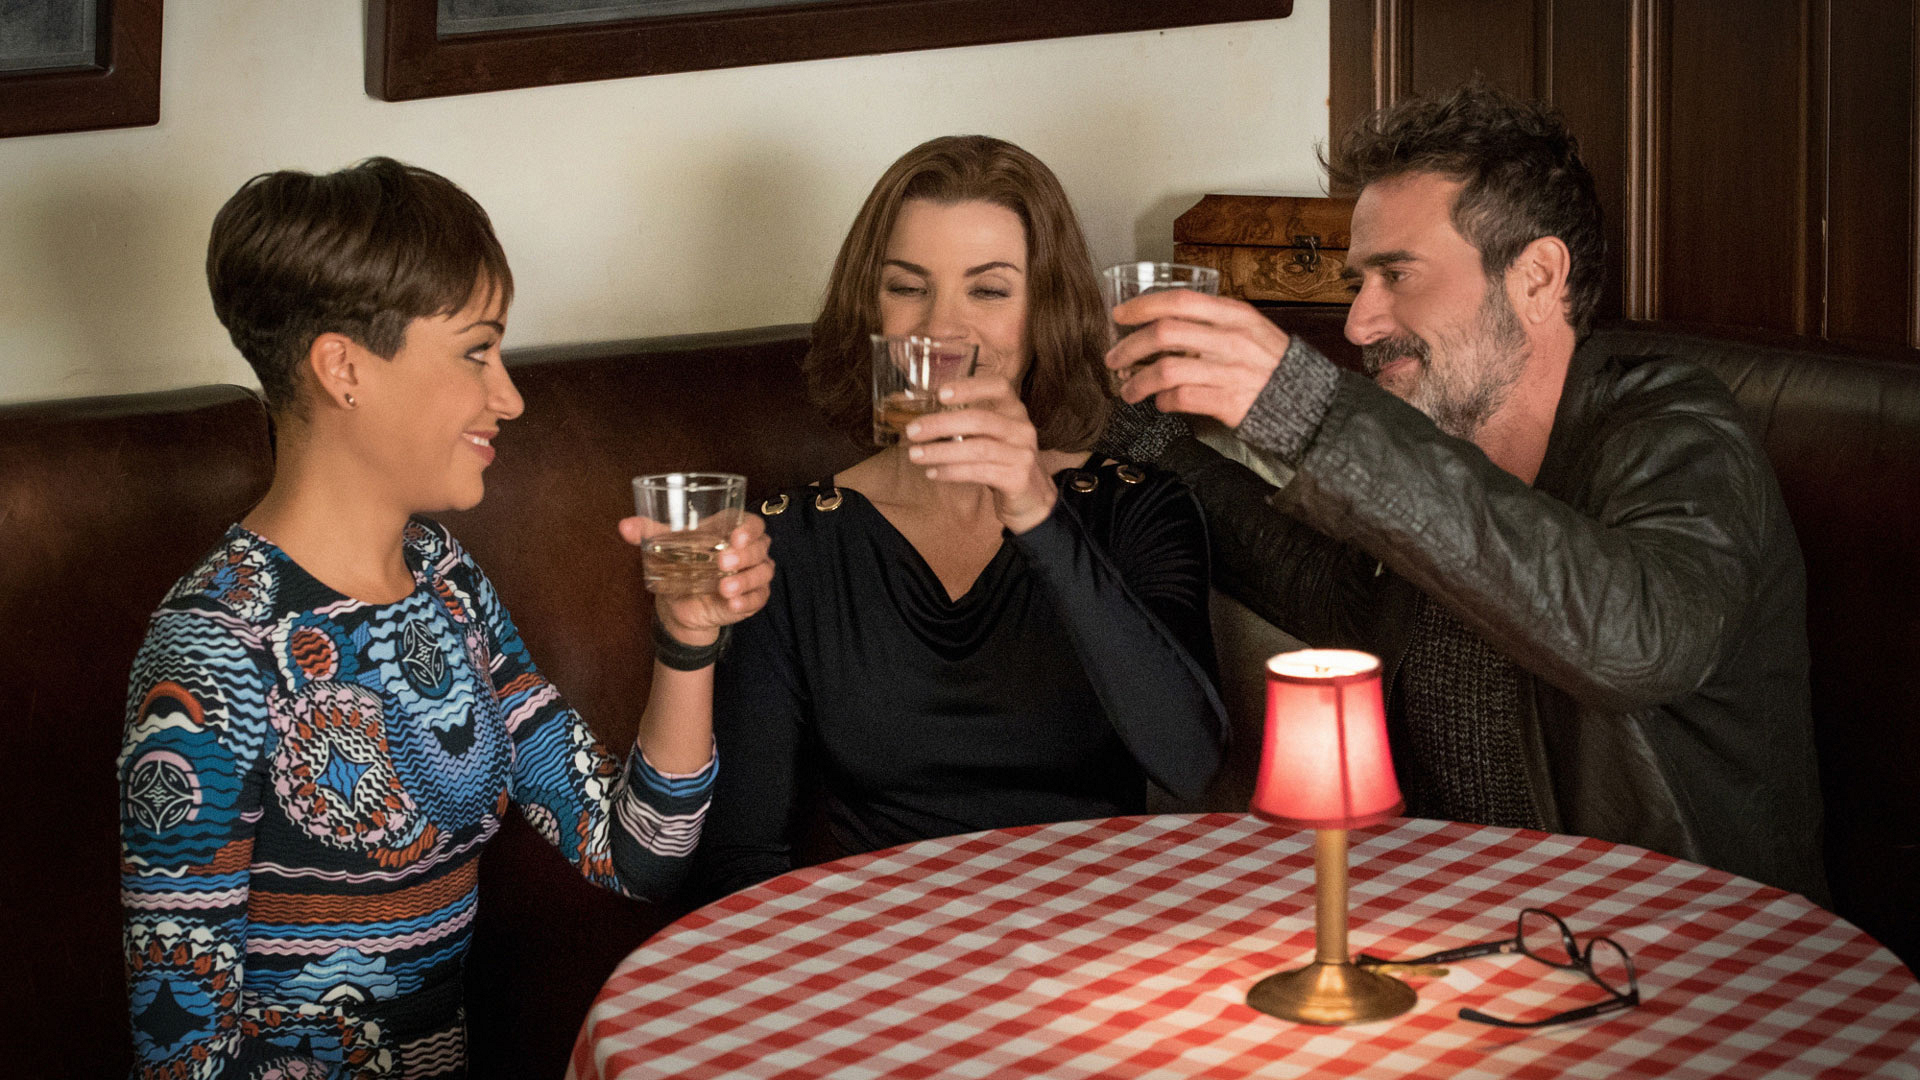 Cush Jumbo as Lucca Quinn, Julianna Margulies as Alicia Florrick, and Jeffrey Dean Morgan as Jason Crouse